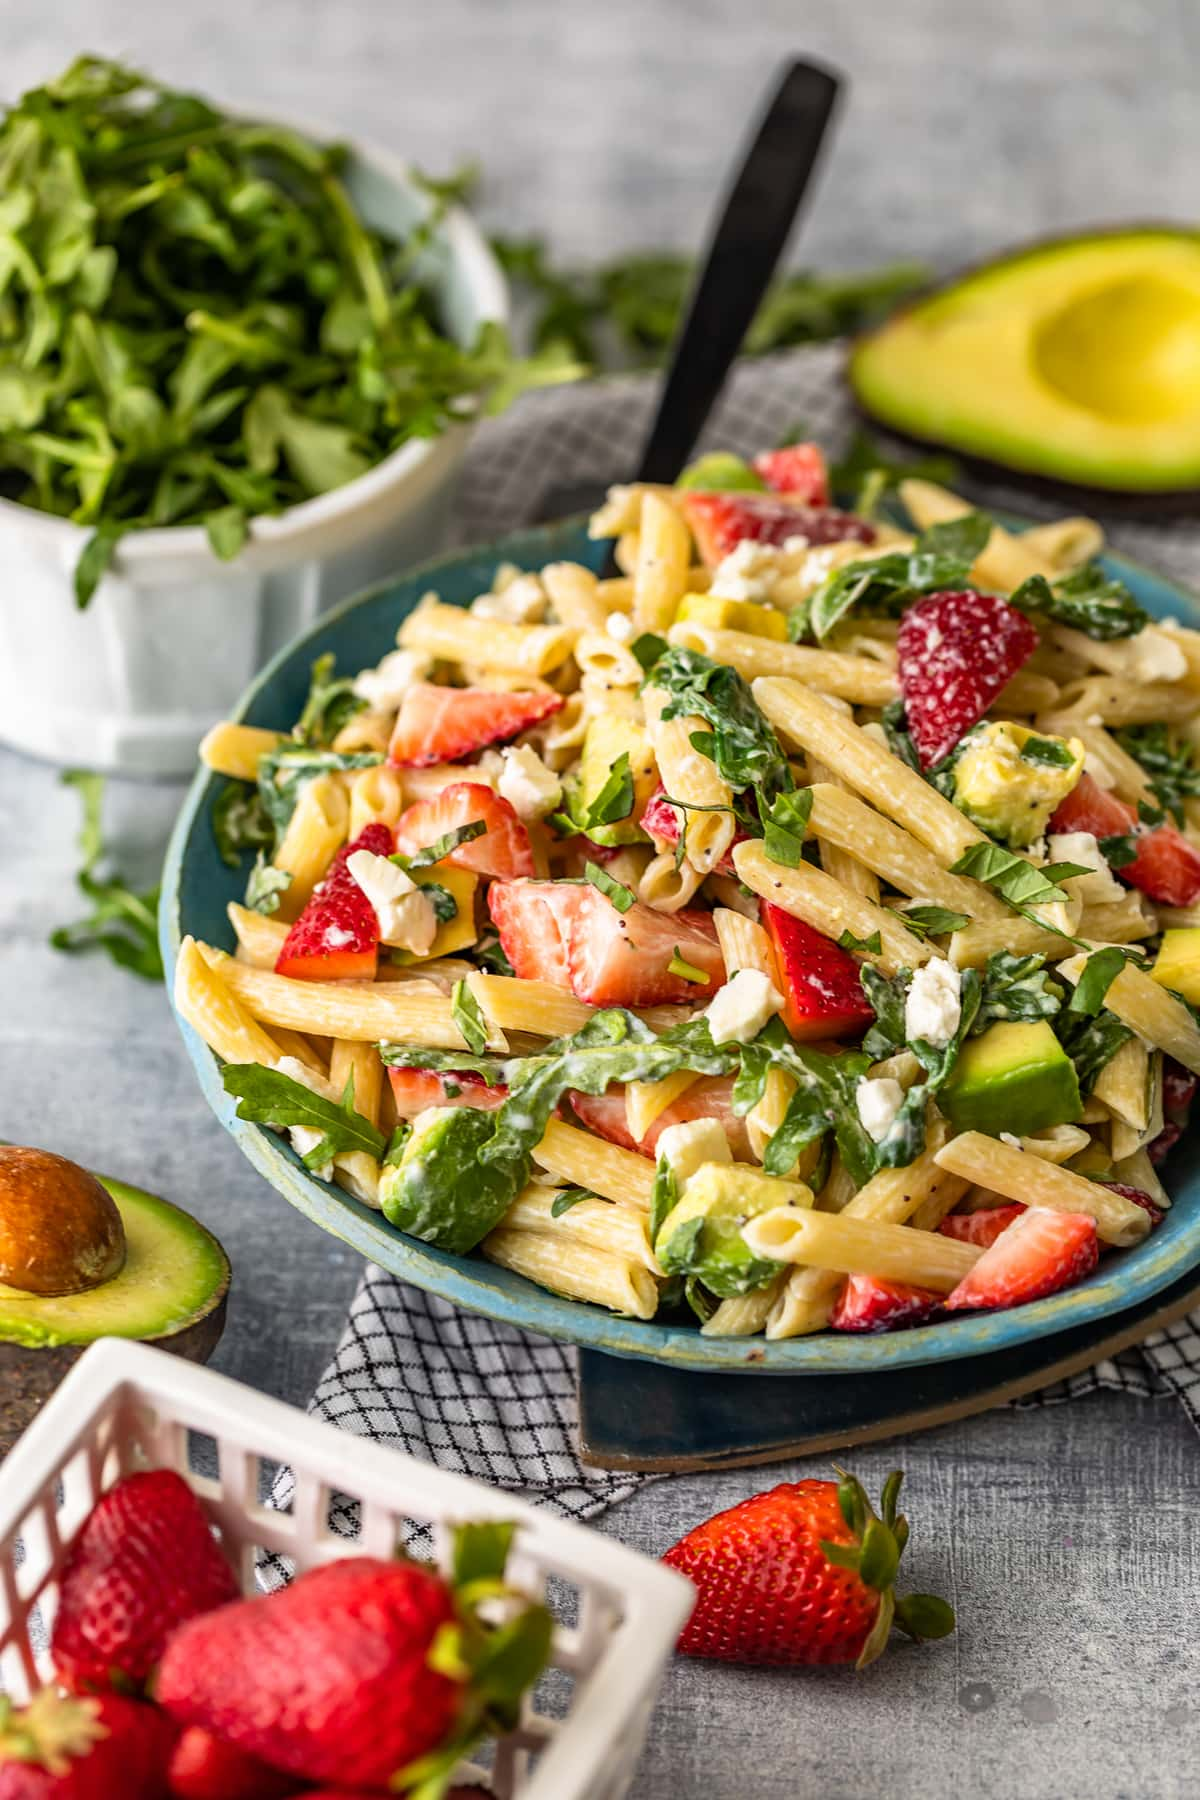 bowl of pasta salad surrounded by avocados, strawberries, and arugula